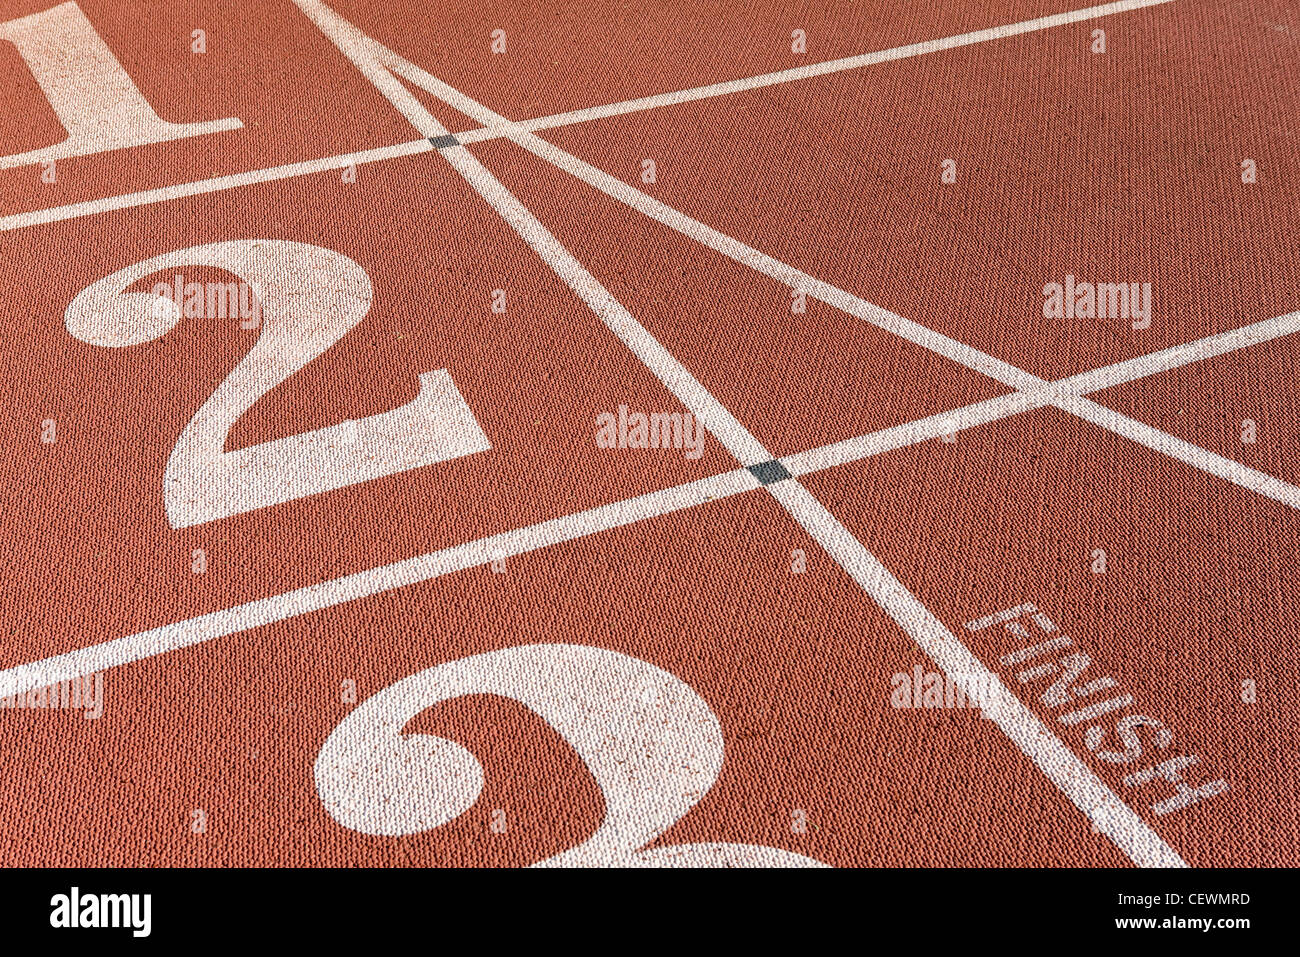 Lanes of running track, focus on lane two - Stock Image